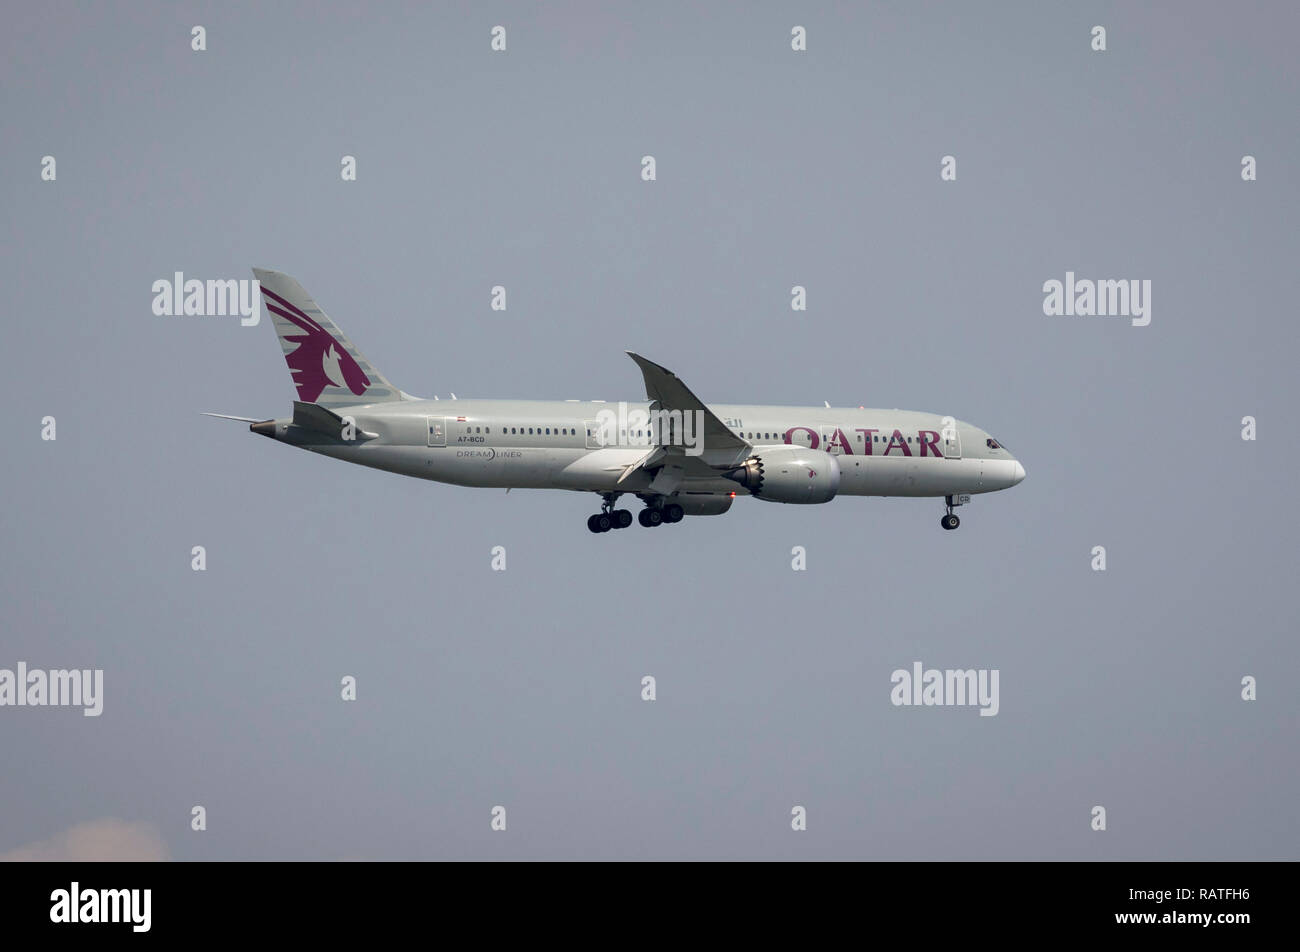 A7-BCD Qatar Airways Boeing 787-8 Dreamliner coming in to land at Entebbe, Uganda, Africa - Stock Image